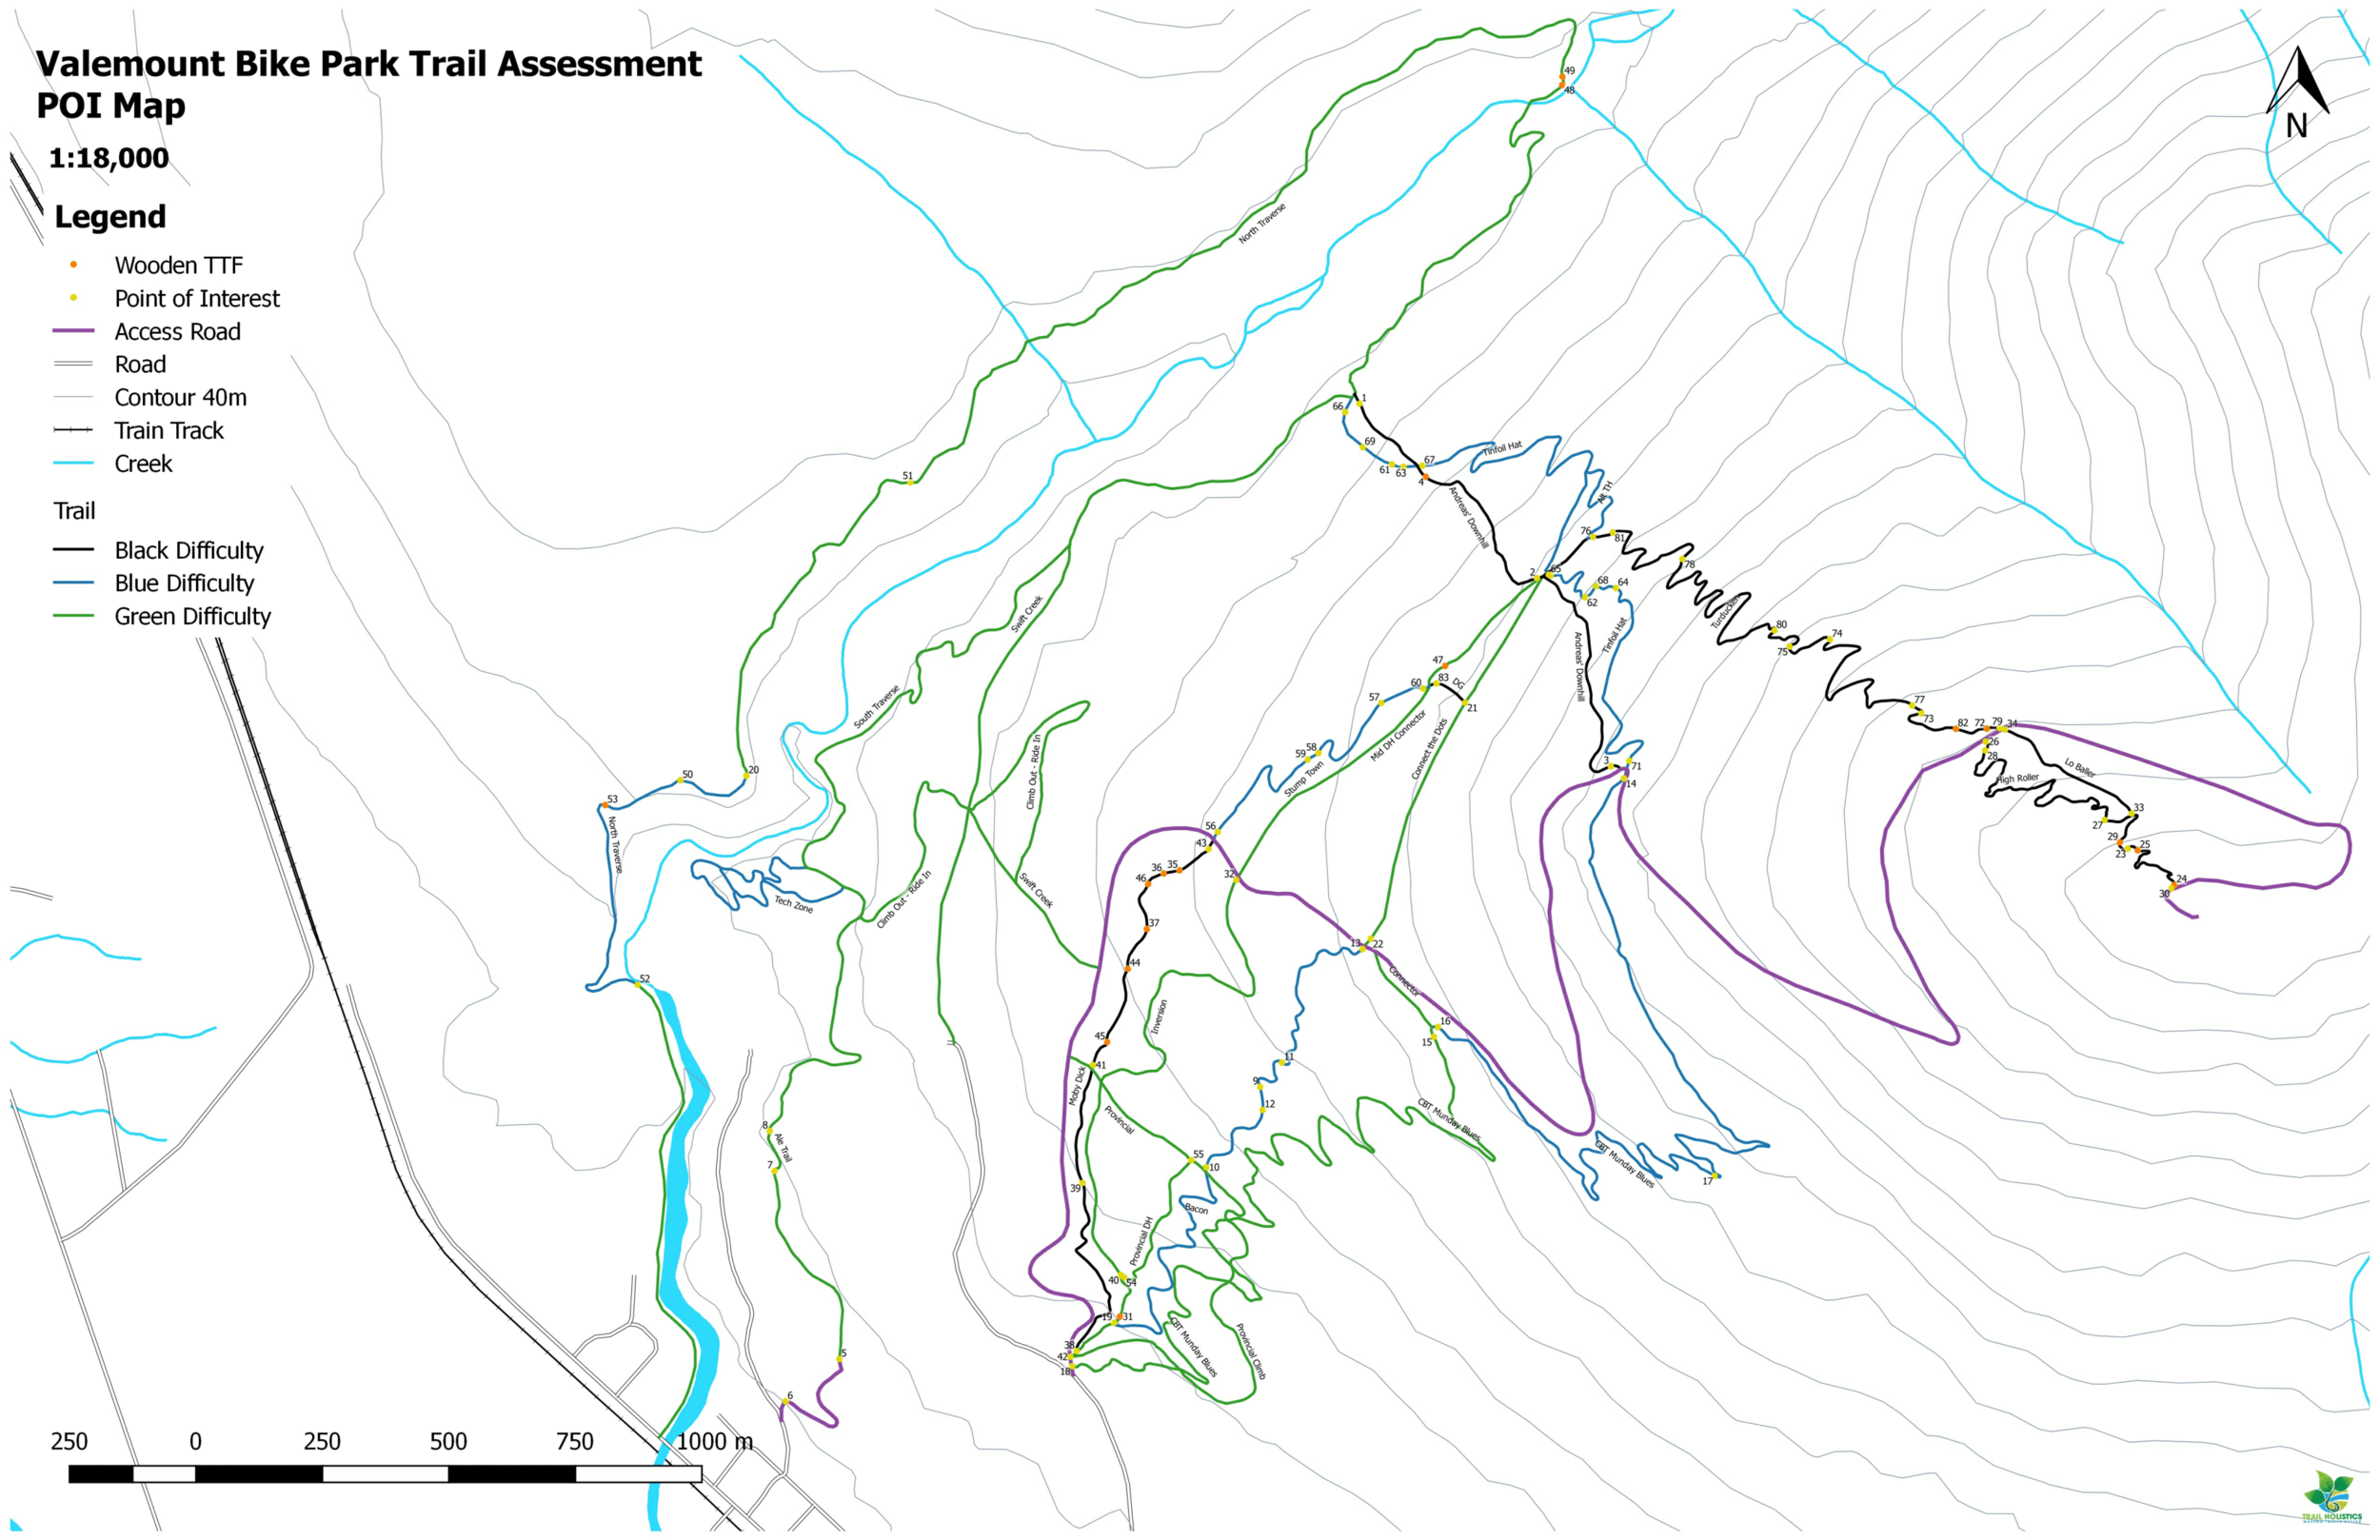 This safety audit in Valemount, BC served to create a sound risk management strategy based on assessed structure inventory, classification of trails and a Signage Plan to uphold regulatory requirements and Duty to Care.